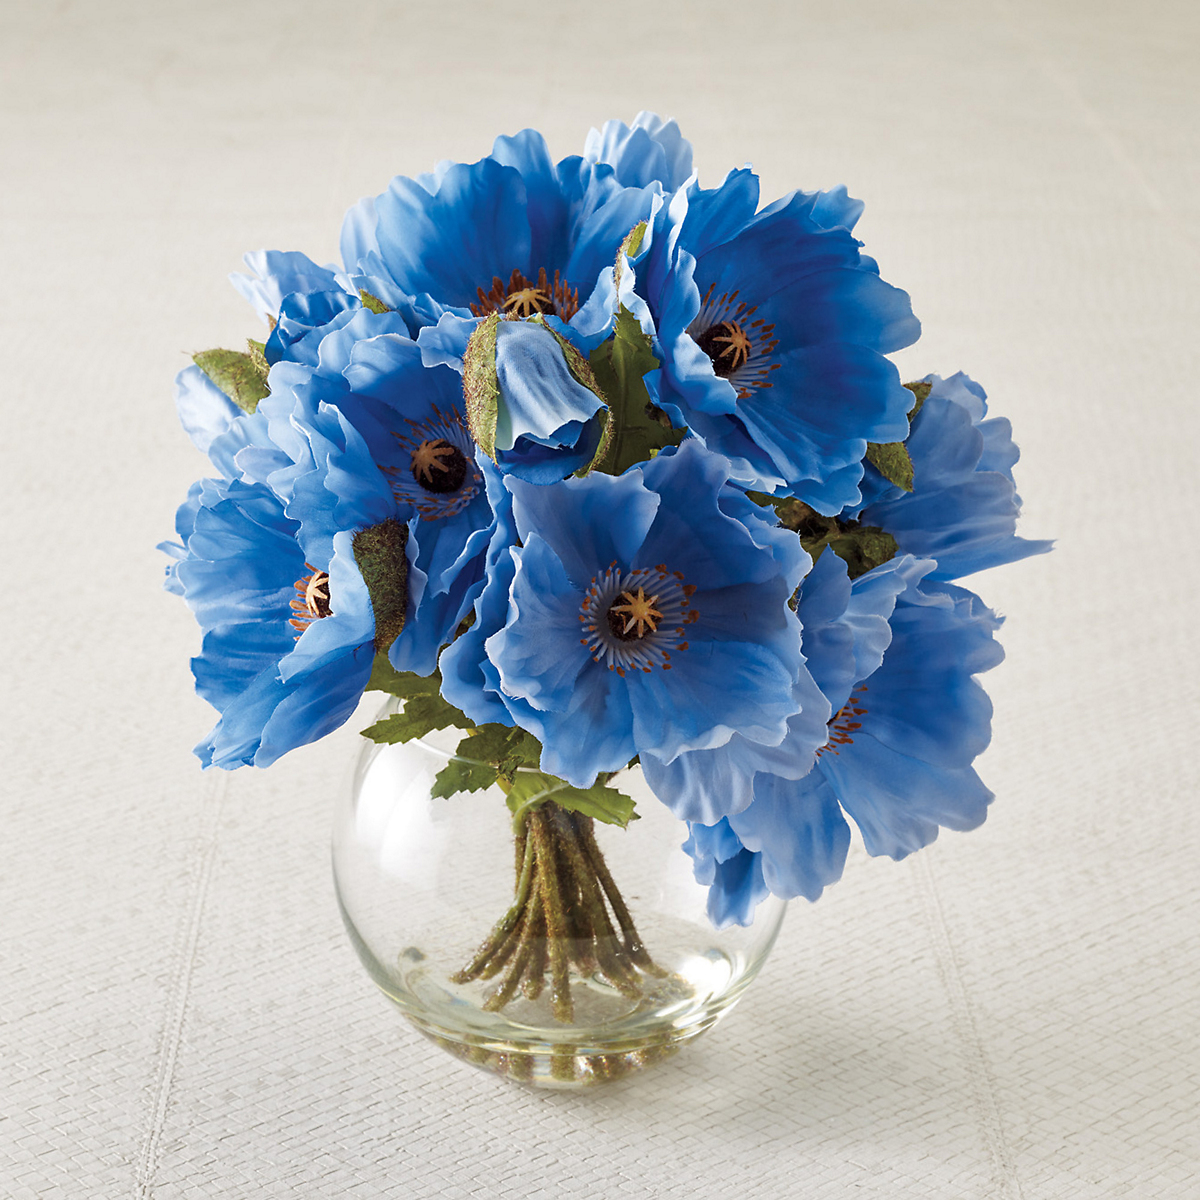 Blue Himalayan Poppies